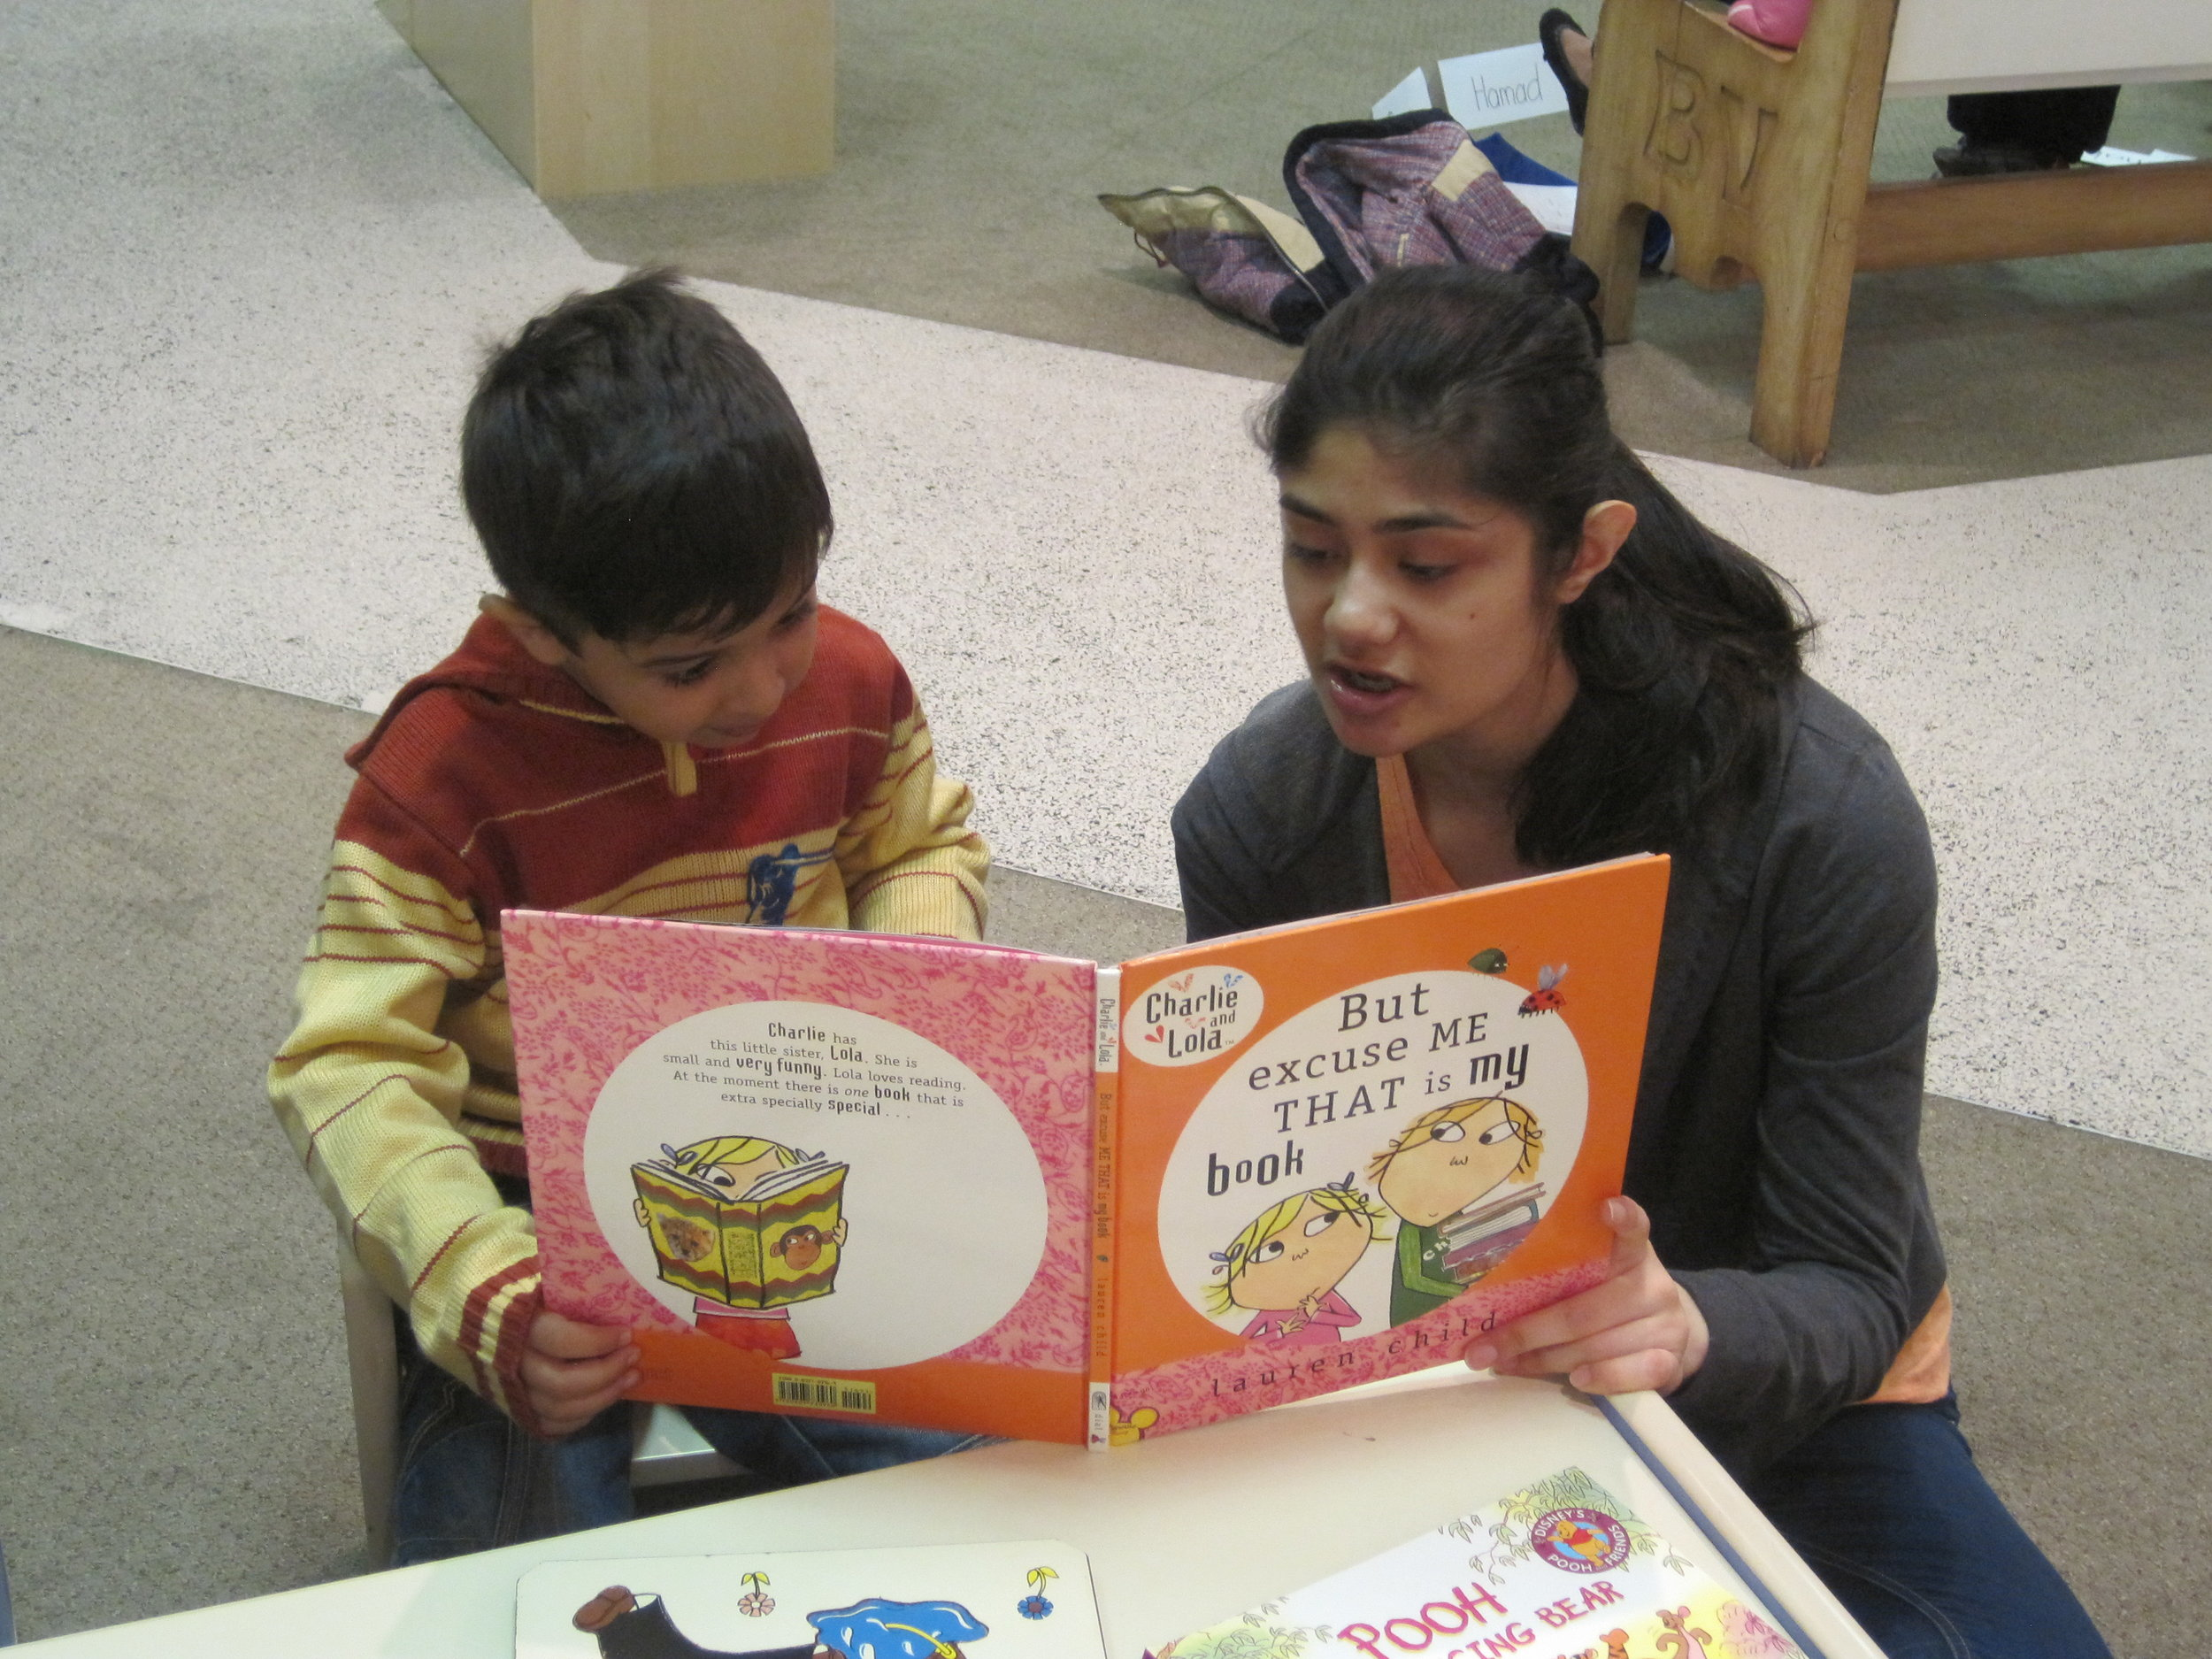 Mohammed just joined us this past Saturday and he has not even begun school yet. That didn't stop him from getting up and telling everyone how much he enjoyed reading about Charlie and Lola with his leader, Faran Gez.